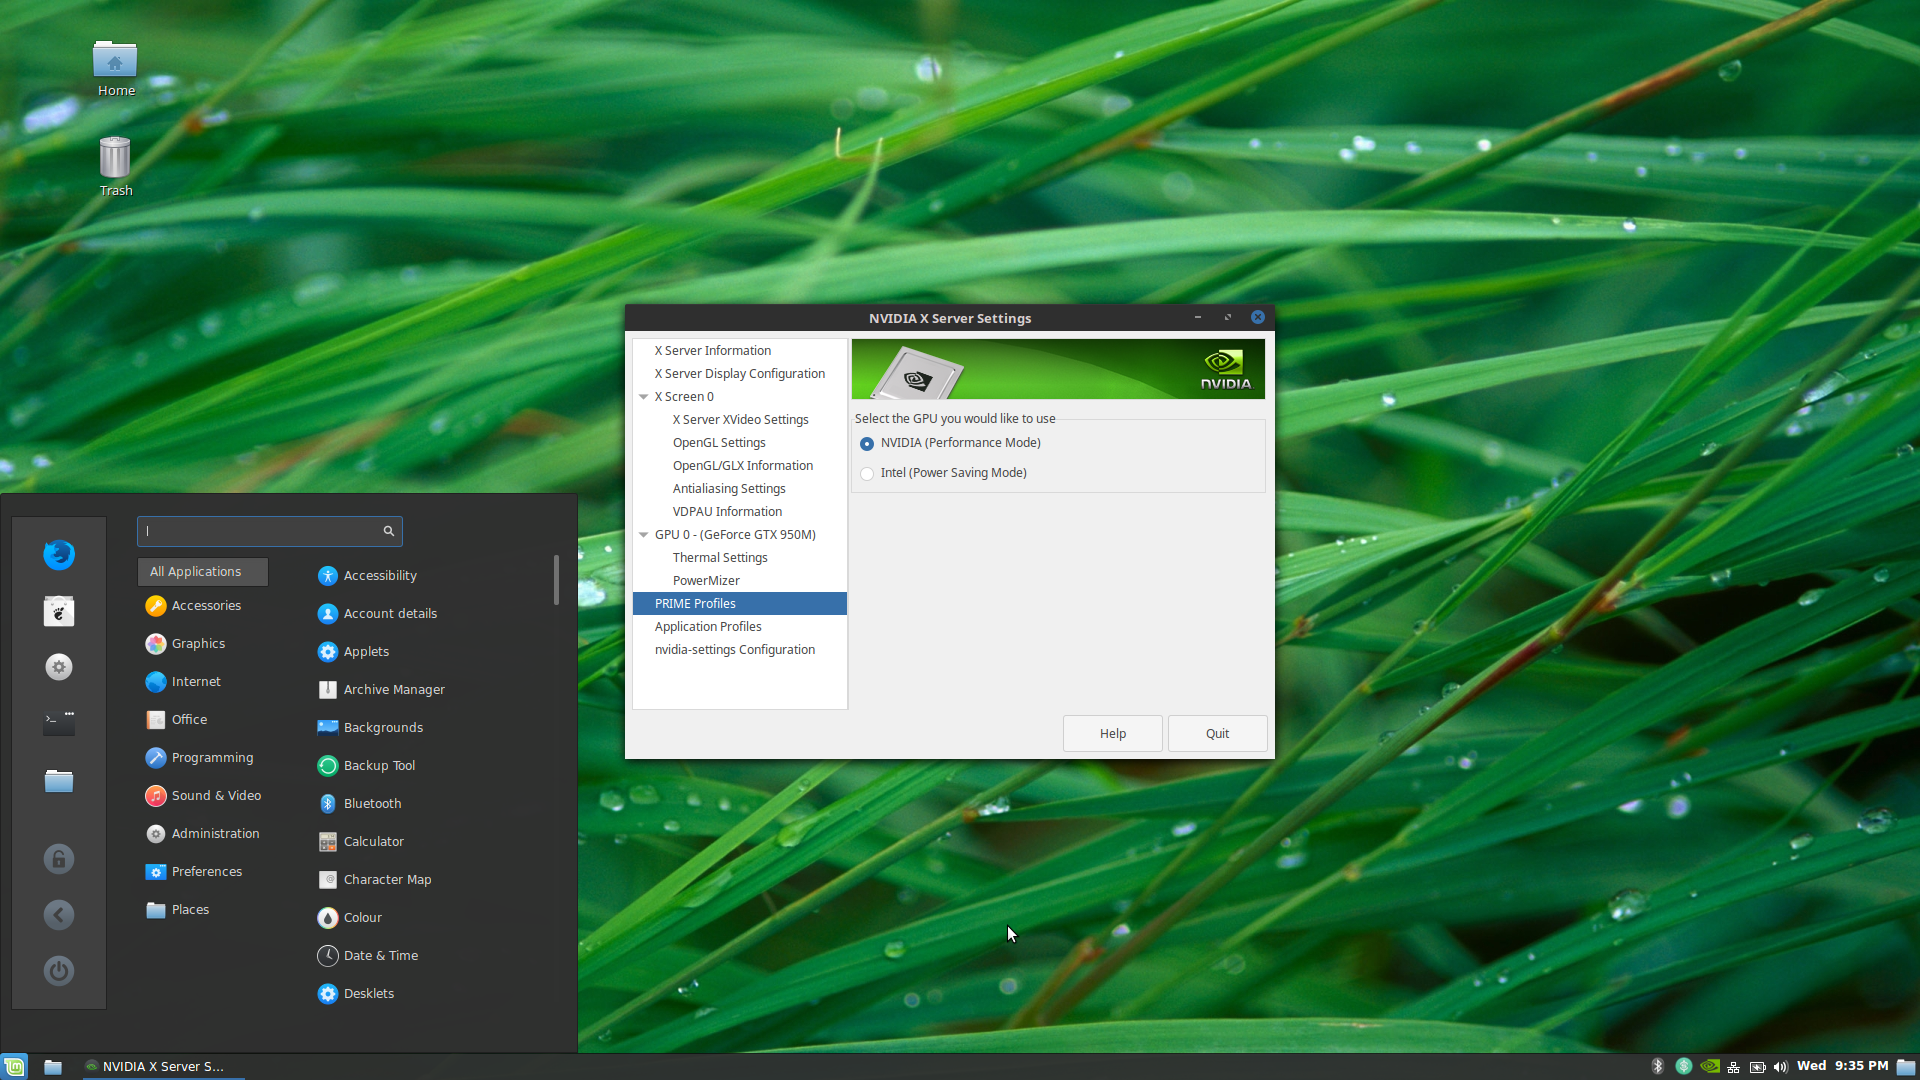 Install Linux Mint 18 3 on Asus X550VX - Cognitio - Medium